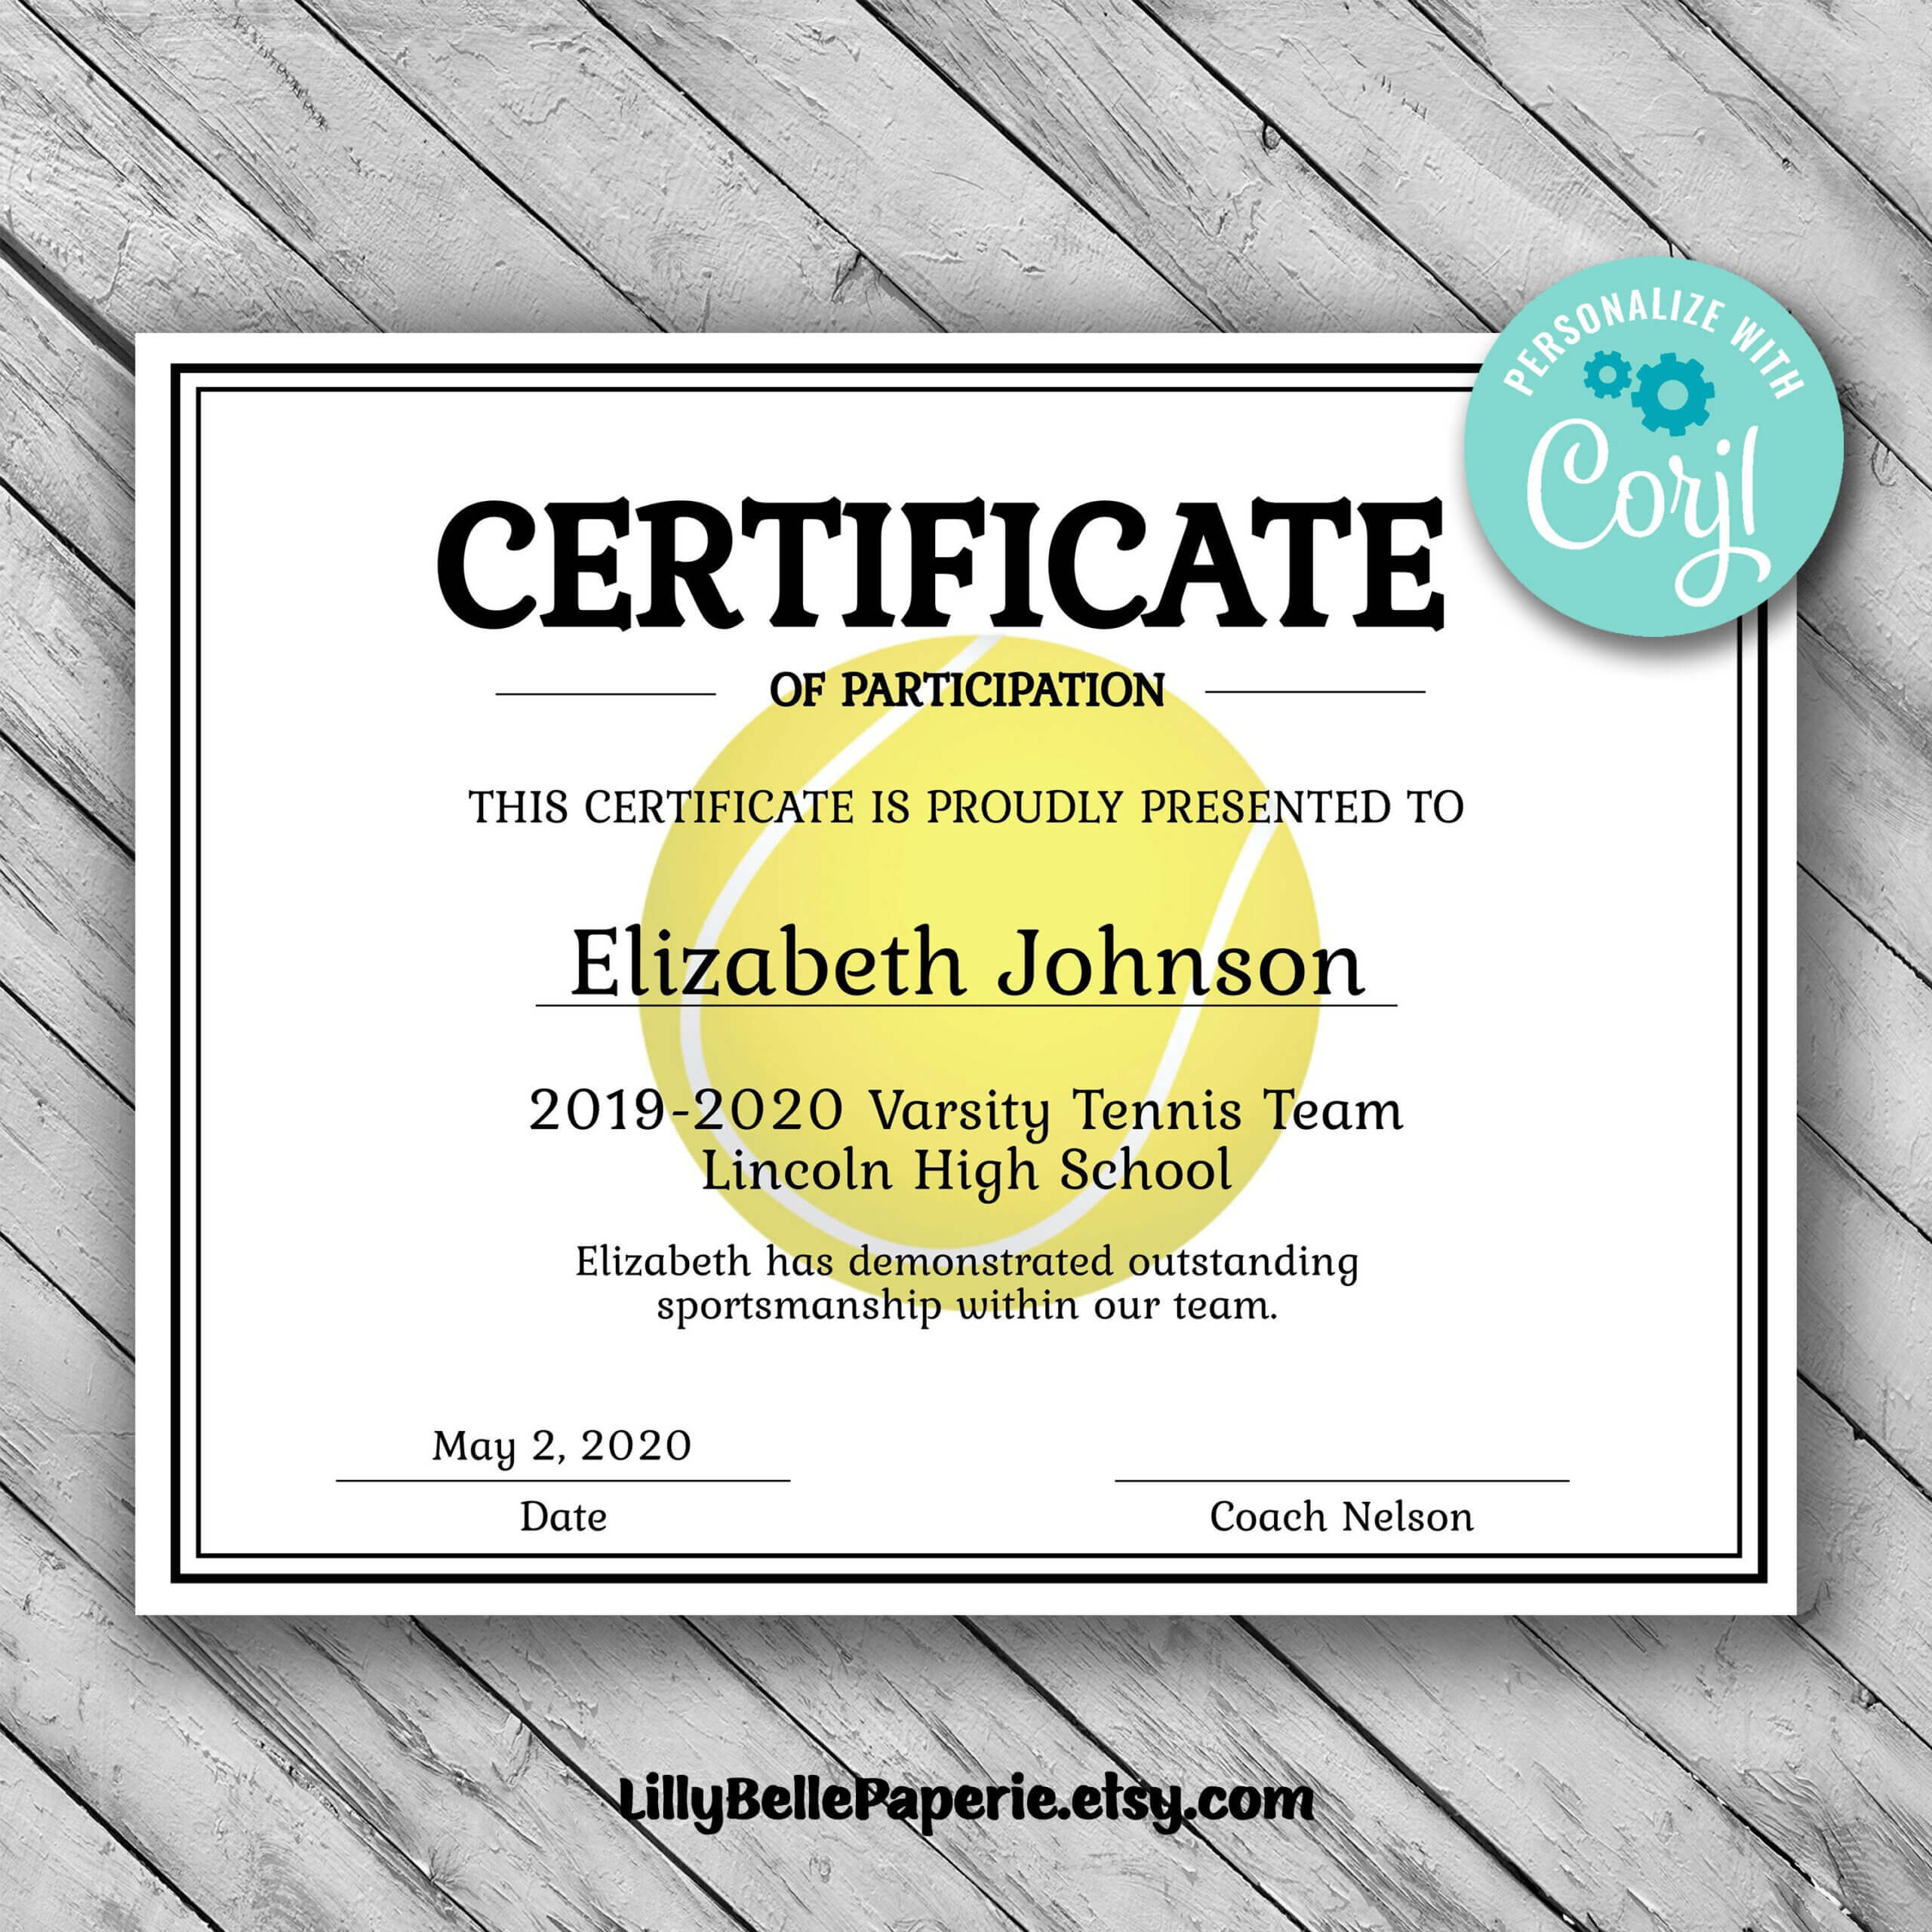 Editable Tennis Certificate Template - Printable Certificate For Tennis Gift Certificate Template